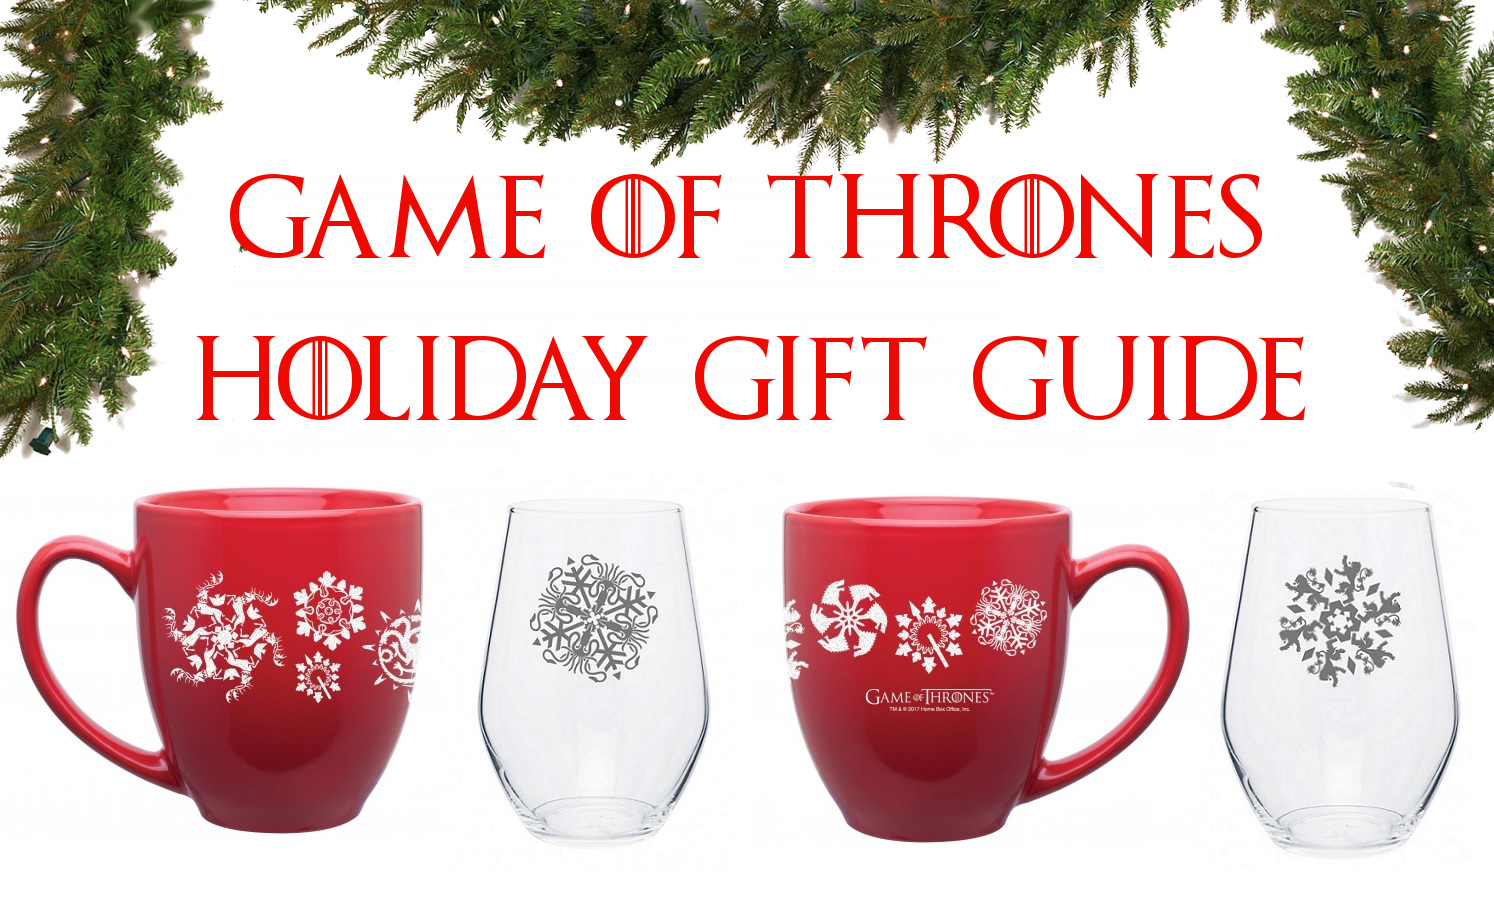 Game of Thrones Holiday Guide Banner